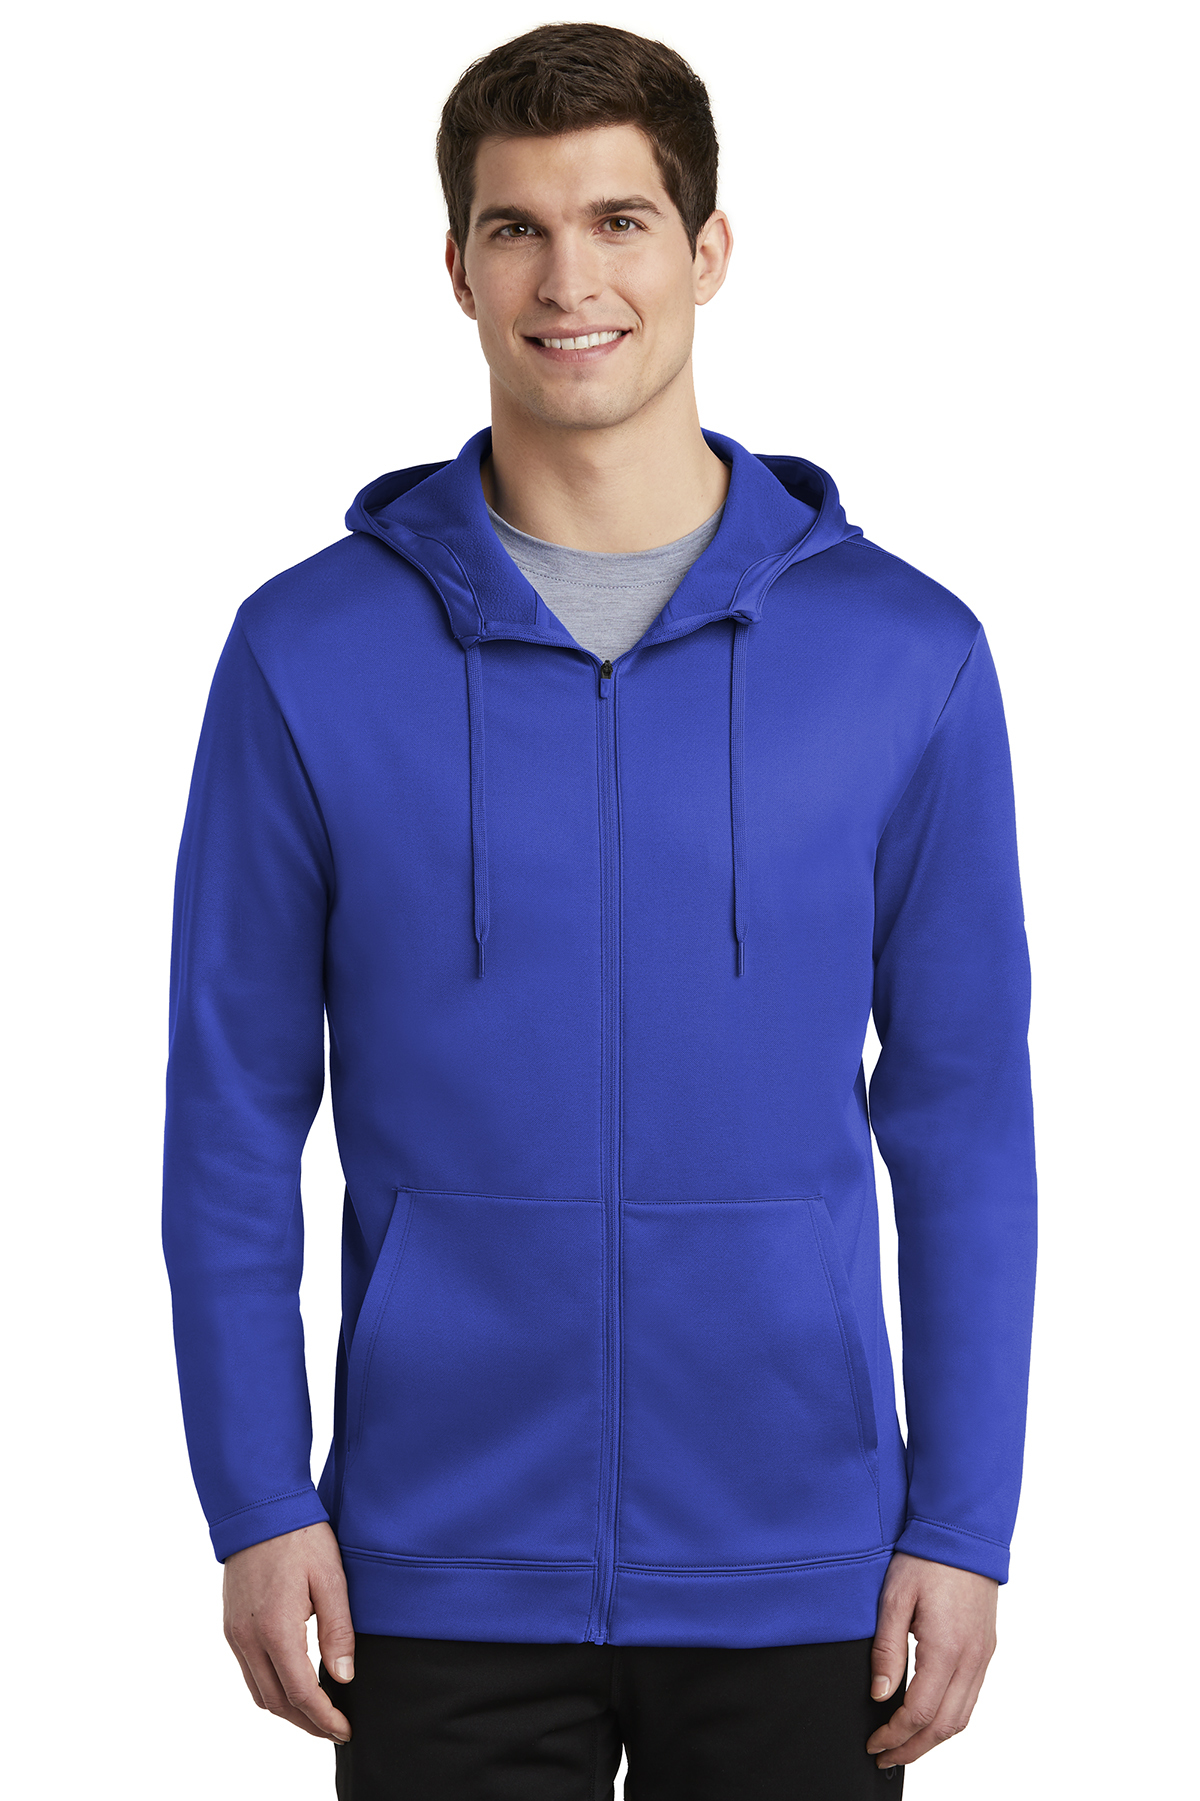 Nike Golf NKAH6259 - Men's Therma-FIT Full Zip Fleece ...